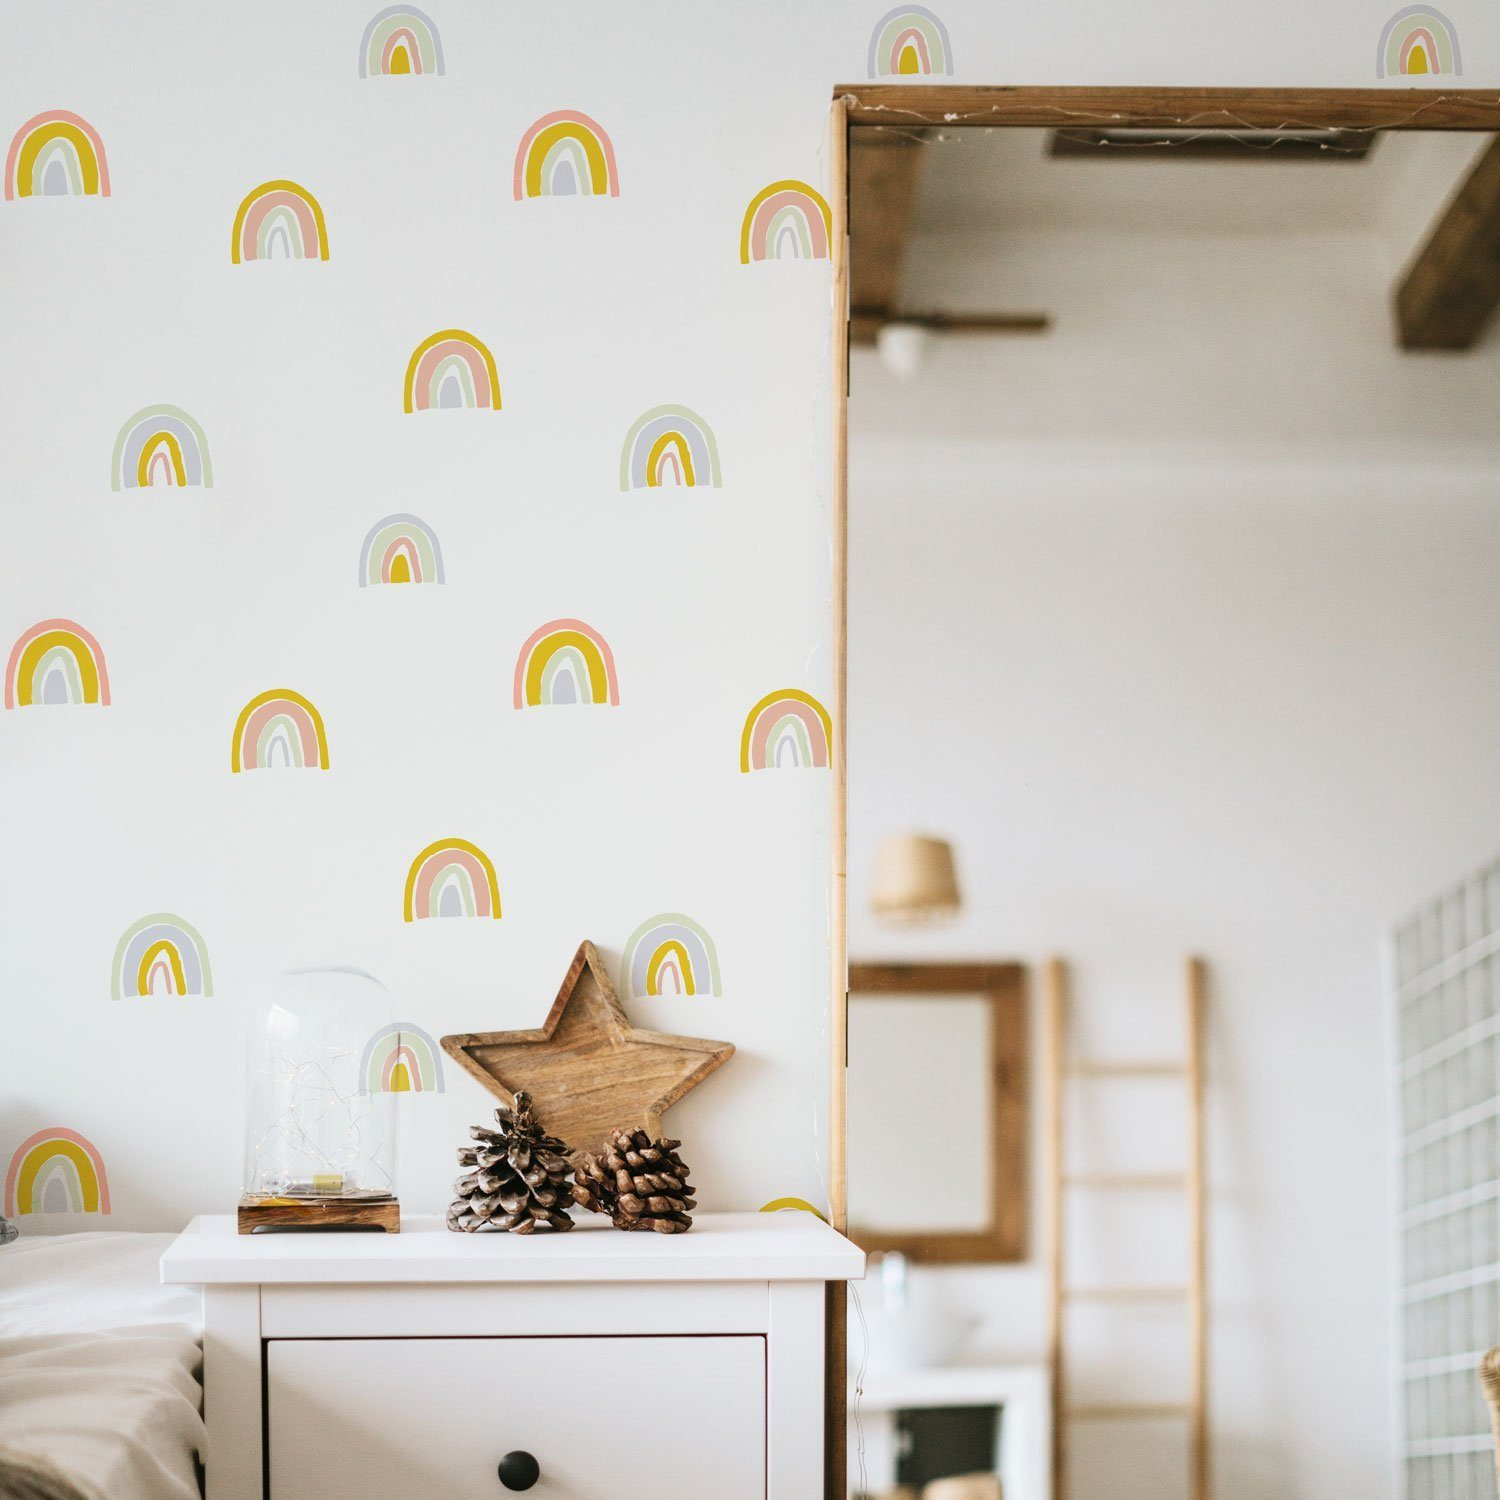 Minimal Rainbow Wallpaper - Project Nursery